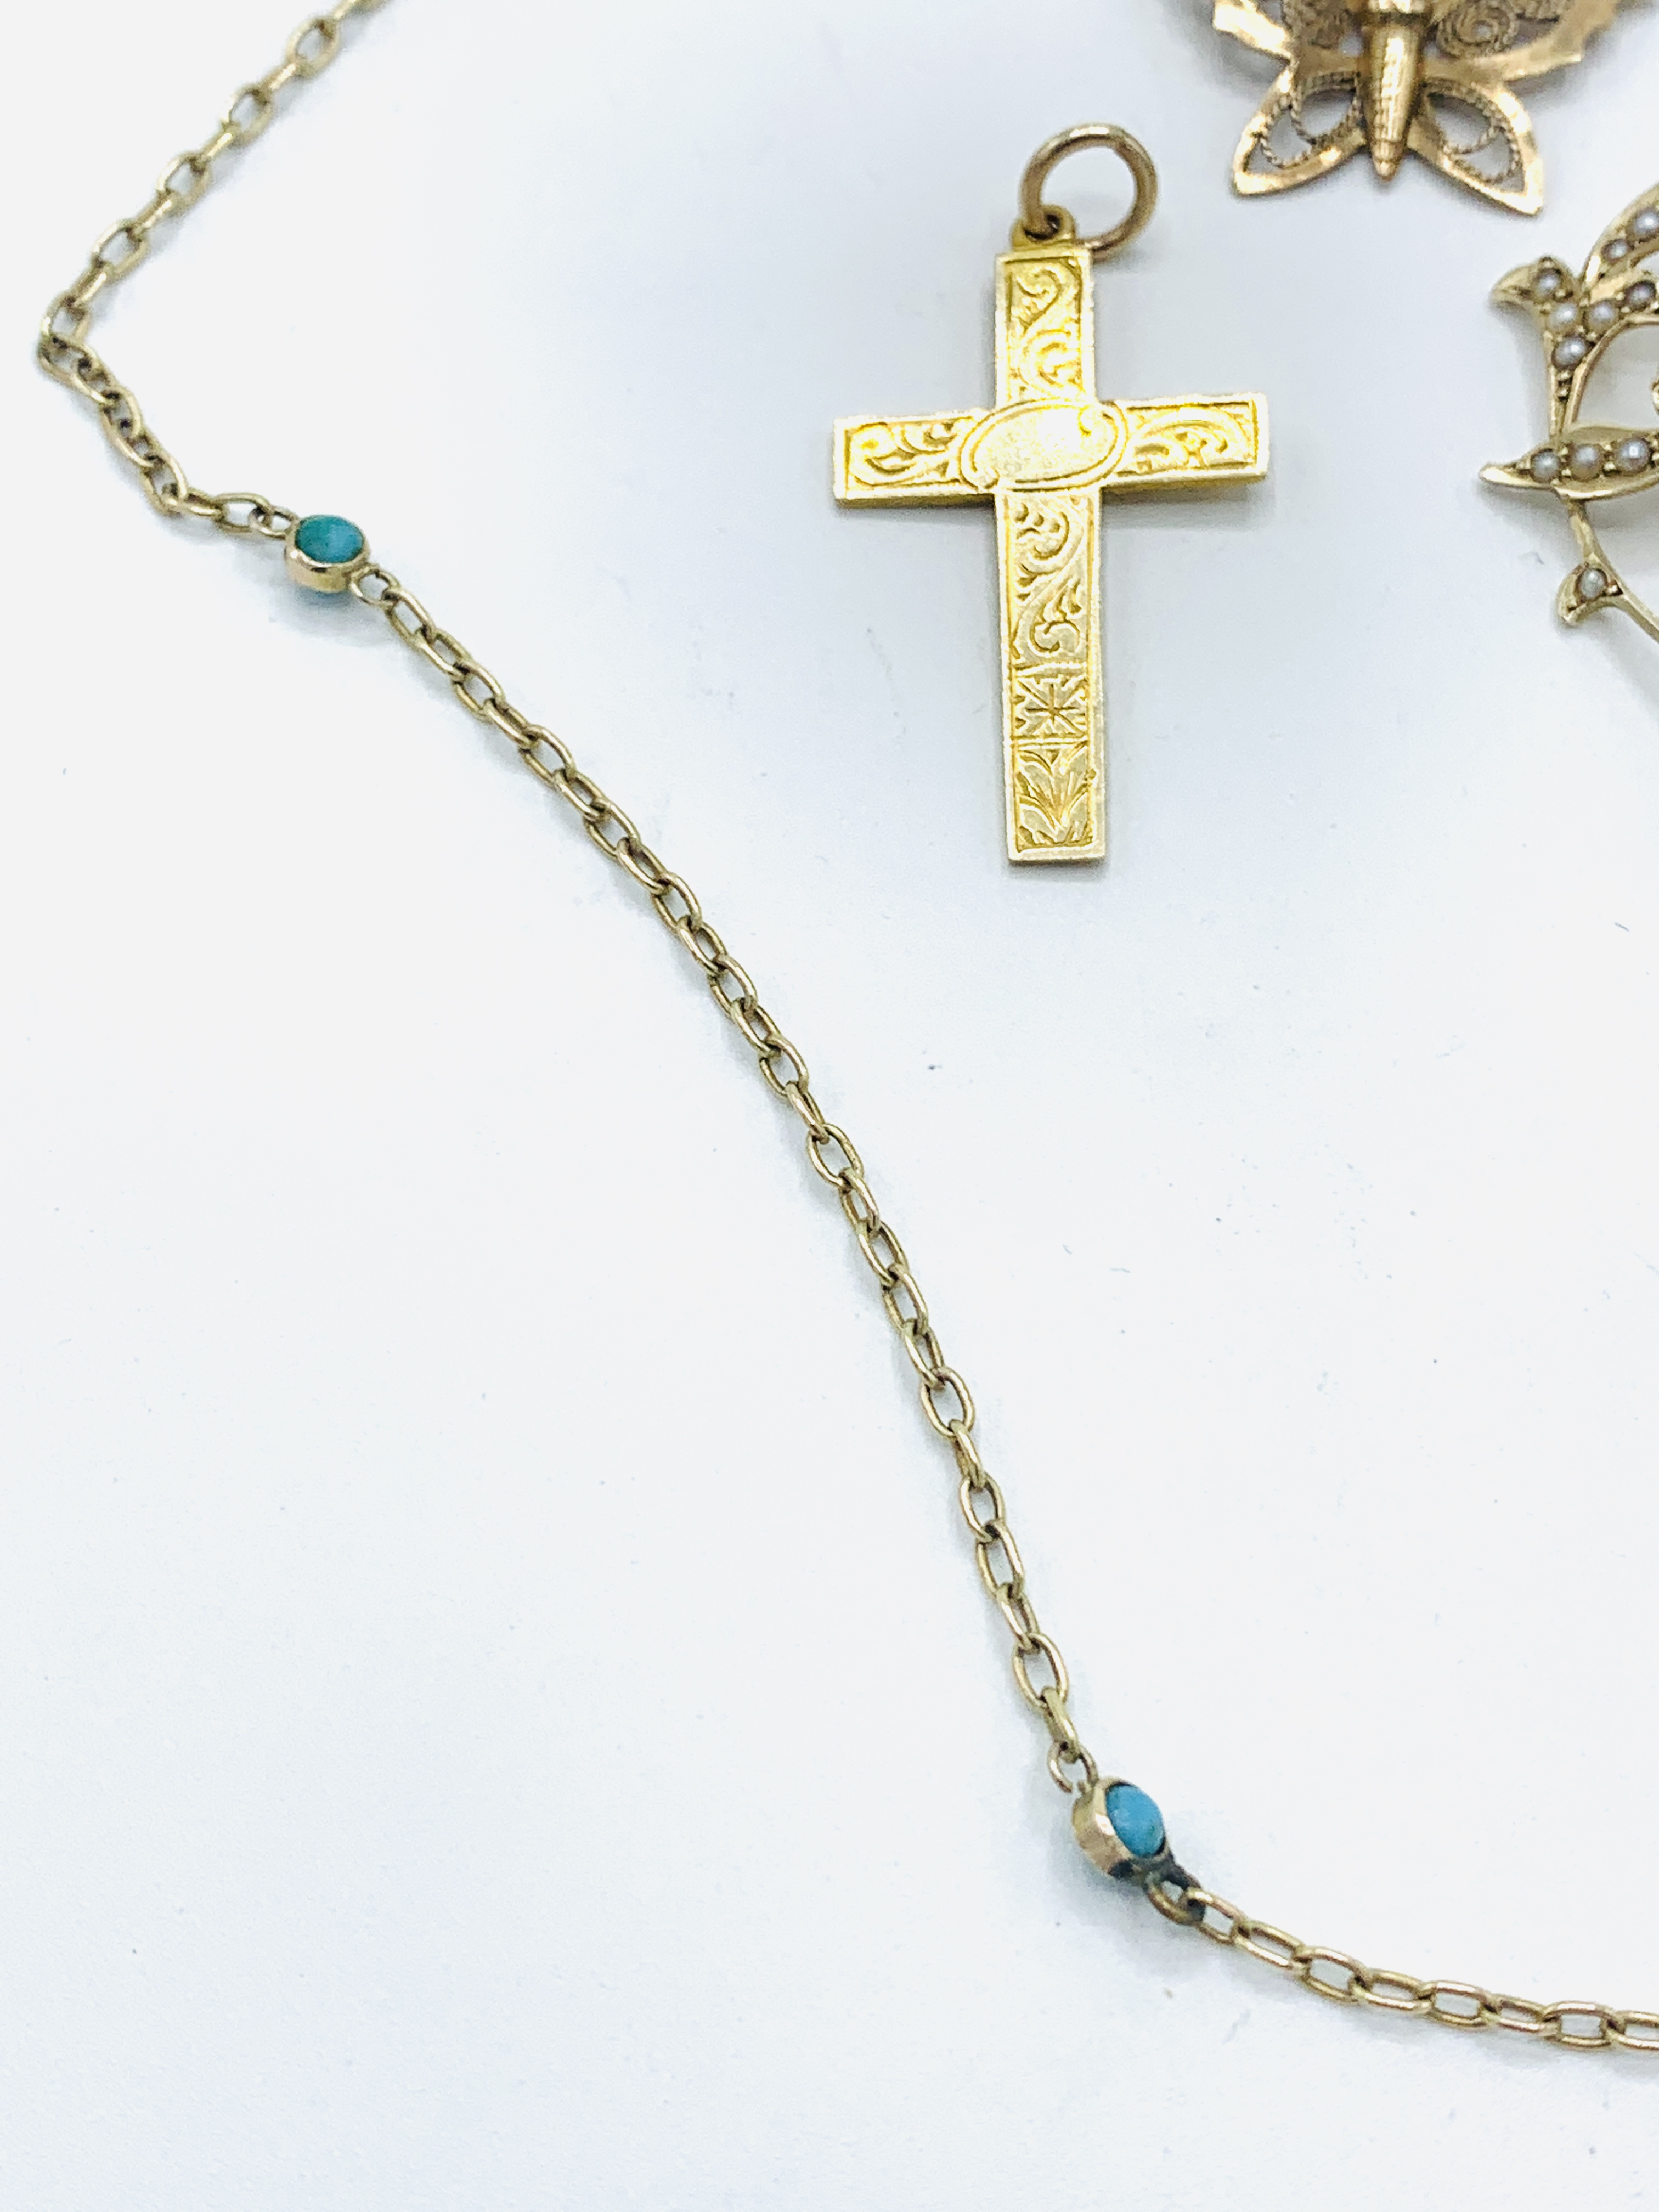 9ct gold aquamarine and seed pearl pendant; gold and turquoise chain; gold cross; butterfly brooch - Image 3 of 5